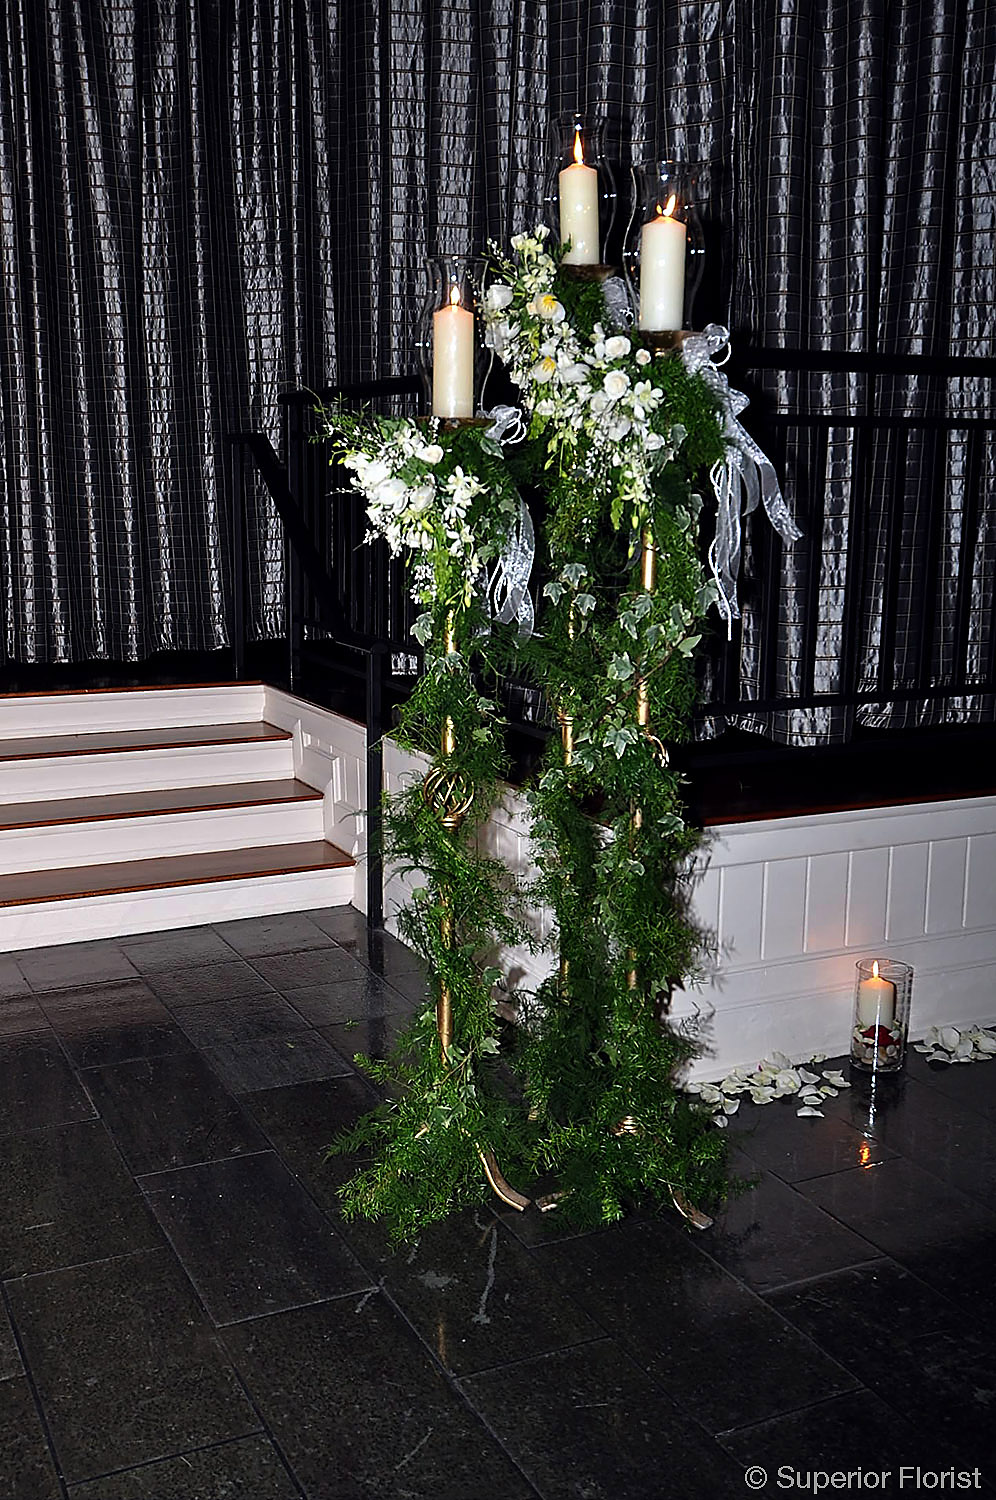 Superior Florist – Wedding Décor:  Wrought iron pillar candle stands (graduated sizes) with hurricane lamps decorated with greenery and clusters of flowers. Entryway of The Lighthouse at Chelsea Piers, NYC.